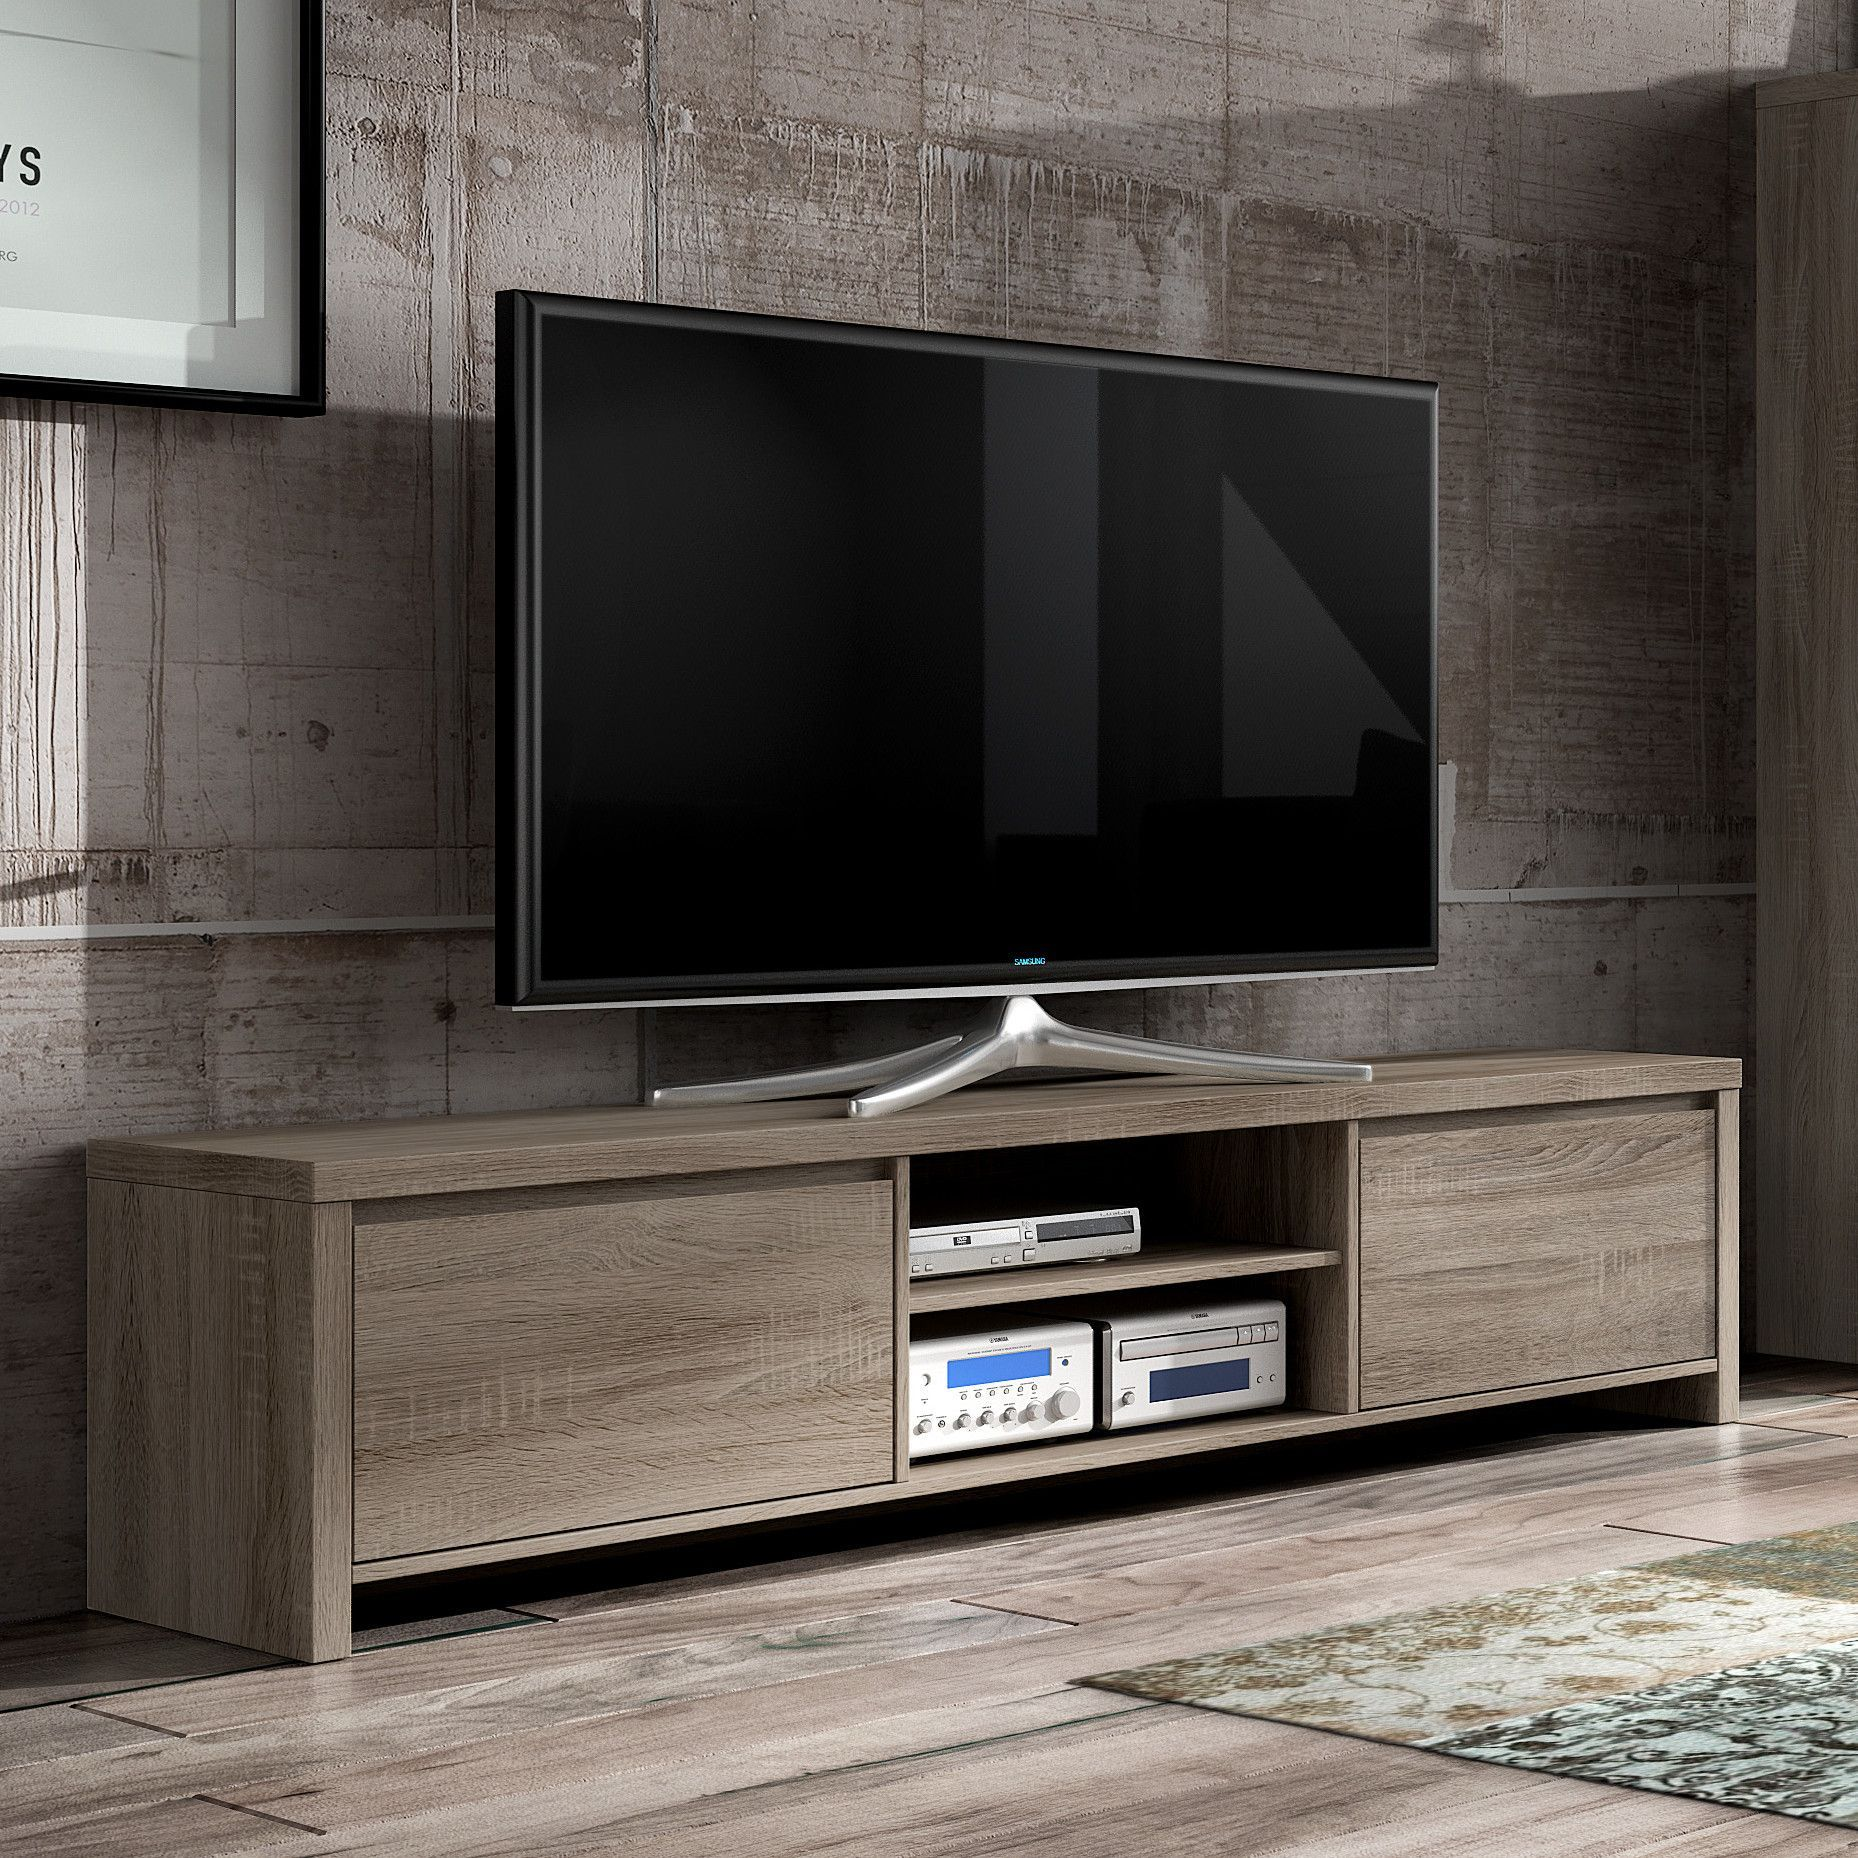 15 Best Modern Living Room Design Ideas: 15+ Stylish Modern TV Stand Ideas For Small Spaces